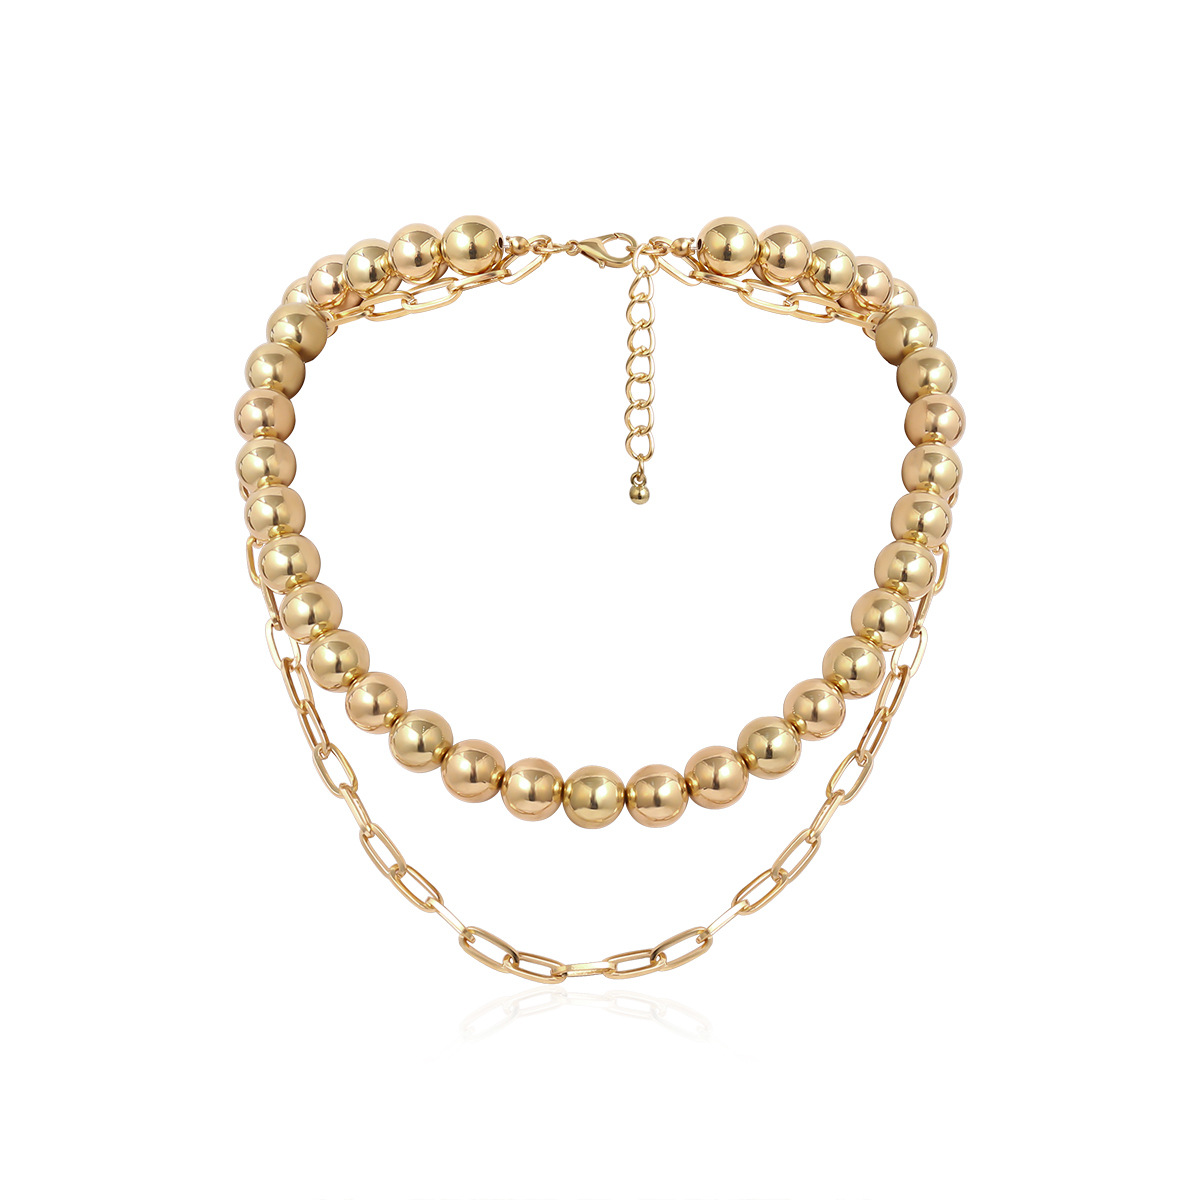 Fashion jewelry yiwu nihaojewelry wholesale simple punk thick chain items female exaggerated hip-hop round bead handmade necklace NHXR213630